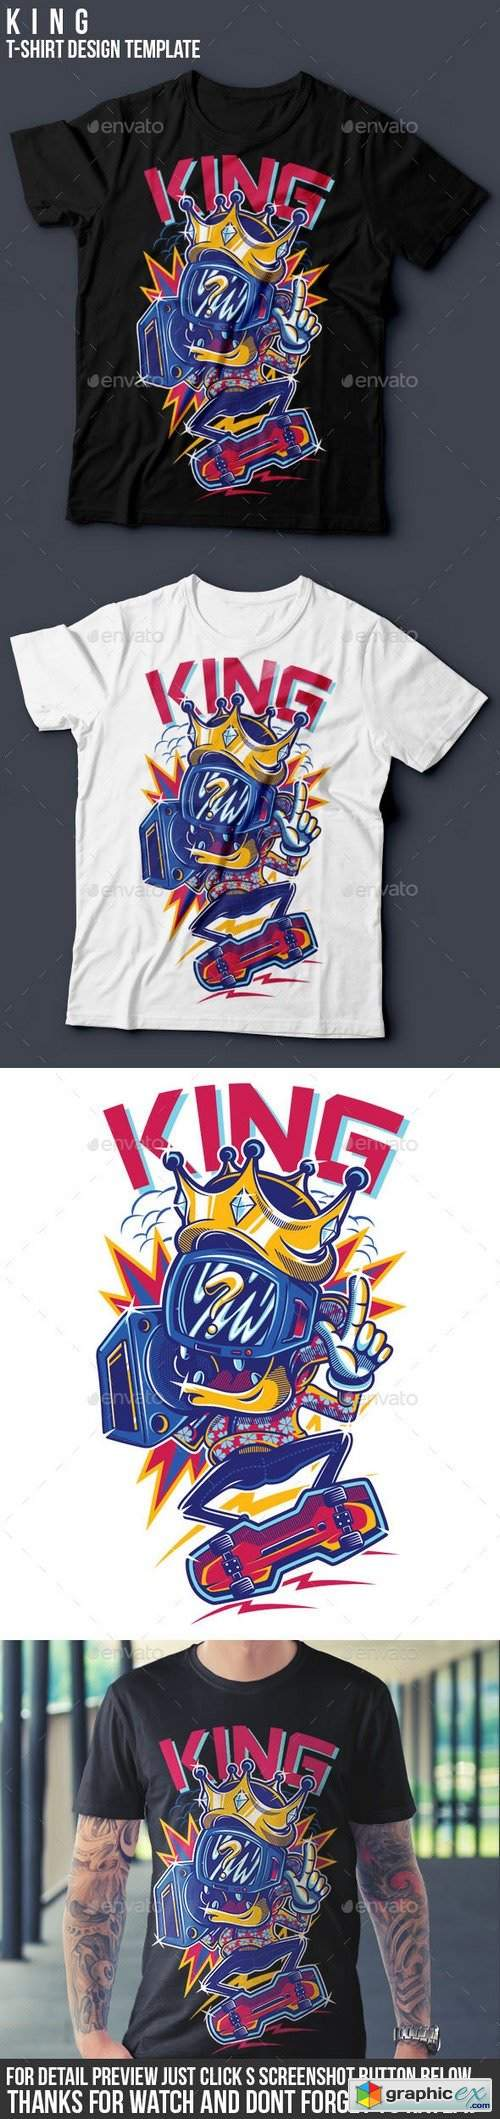 KING T-Shirt Design